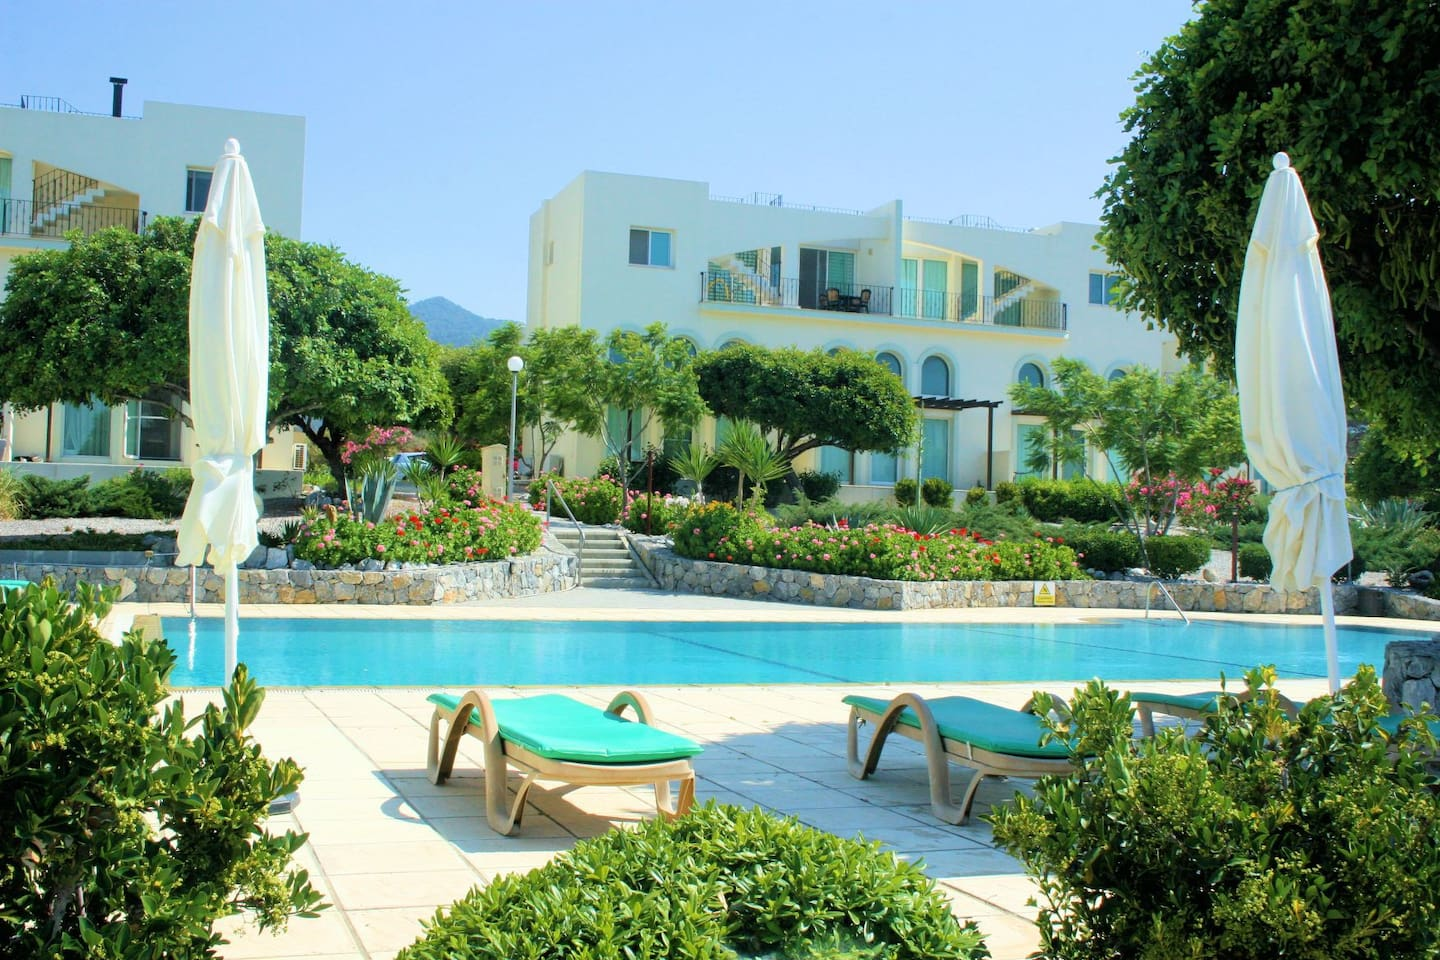 Beautifully landscaped gardens with fabulously large swimming pool and sunbeds for free use by guests.